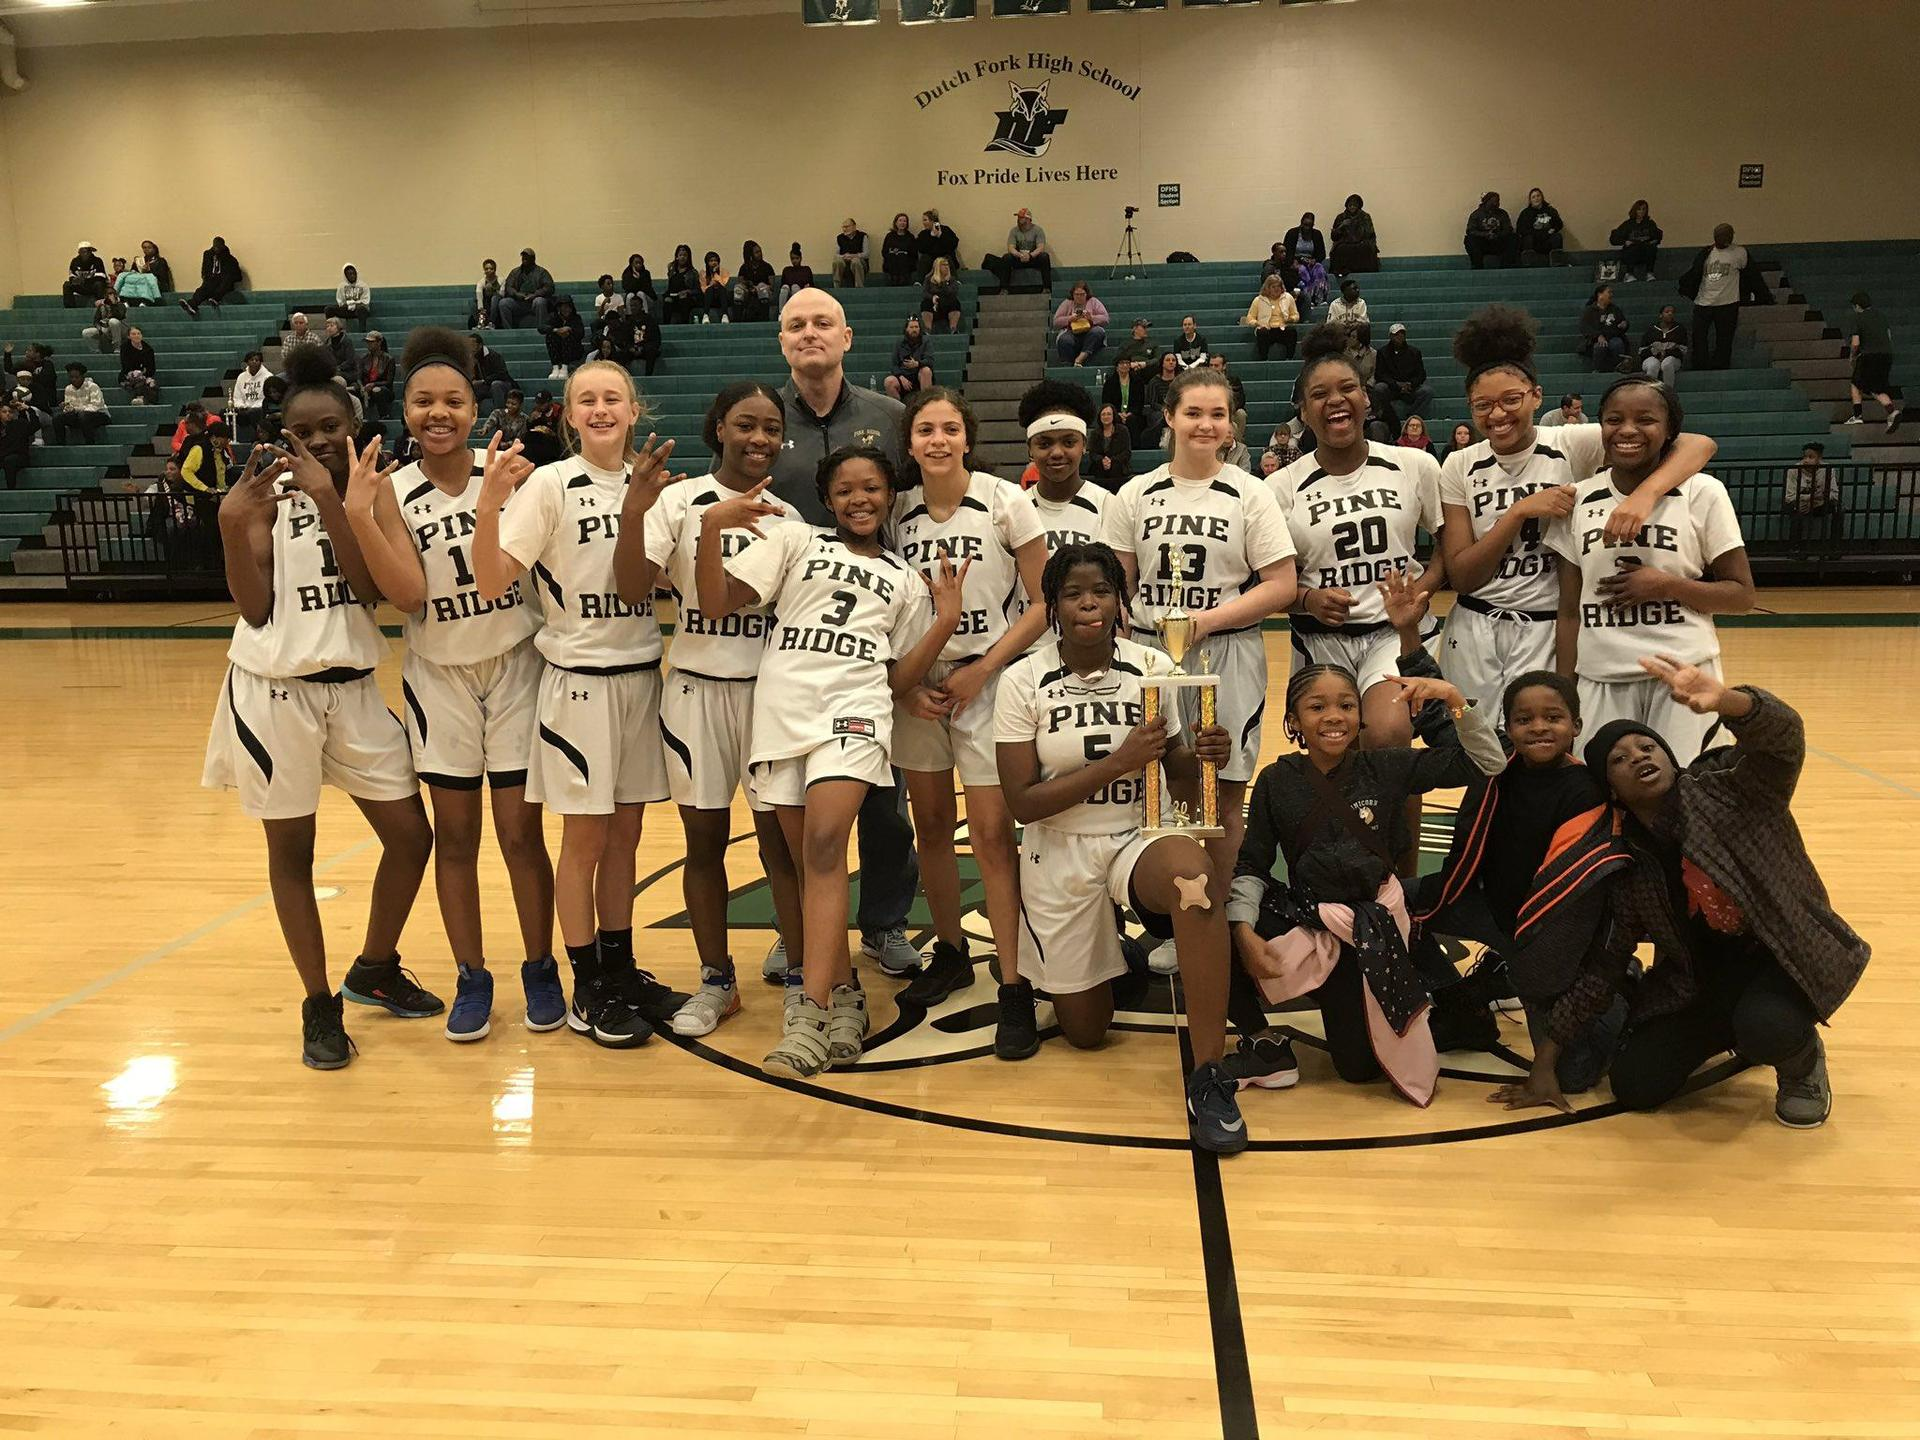 Girls Basketball 2020 PAC Champs